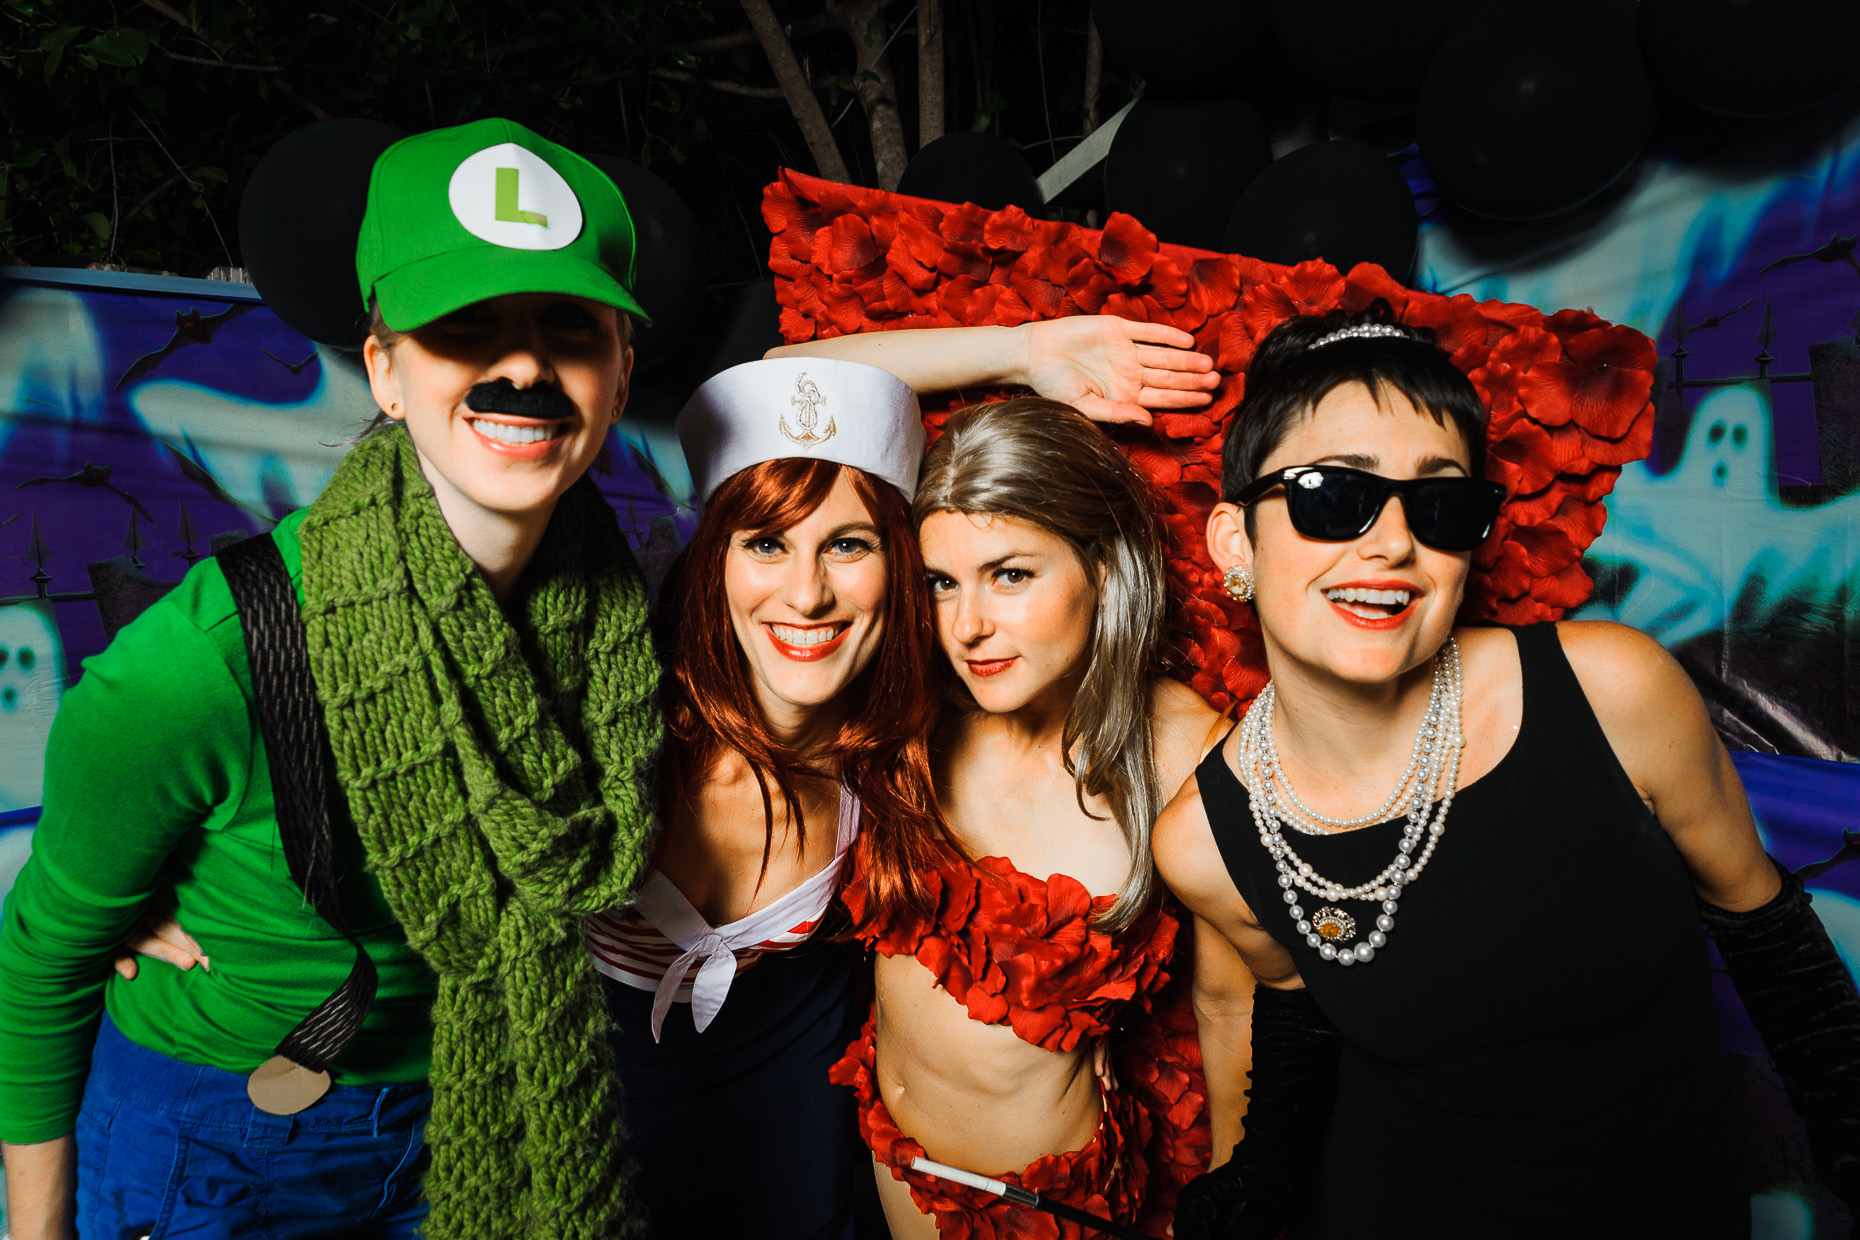 Photobooth-Halloween-Austin-Event-Commercial-Photographer.jpg